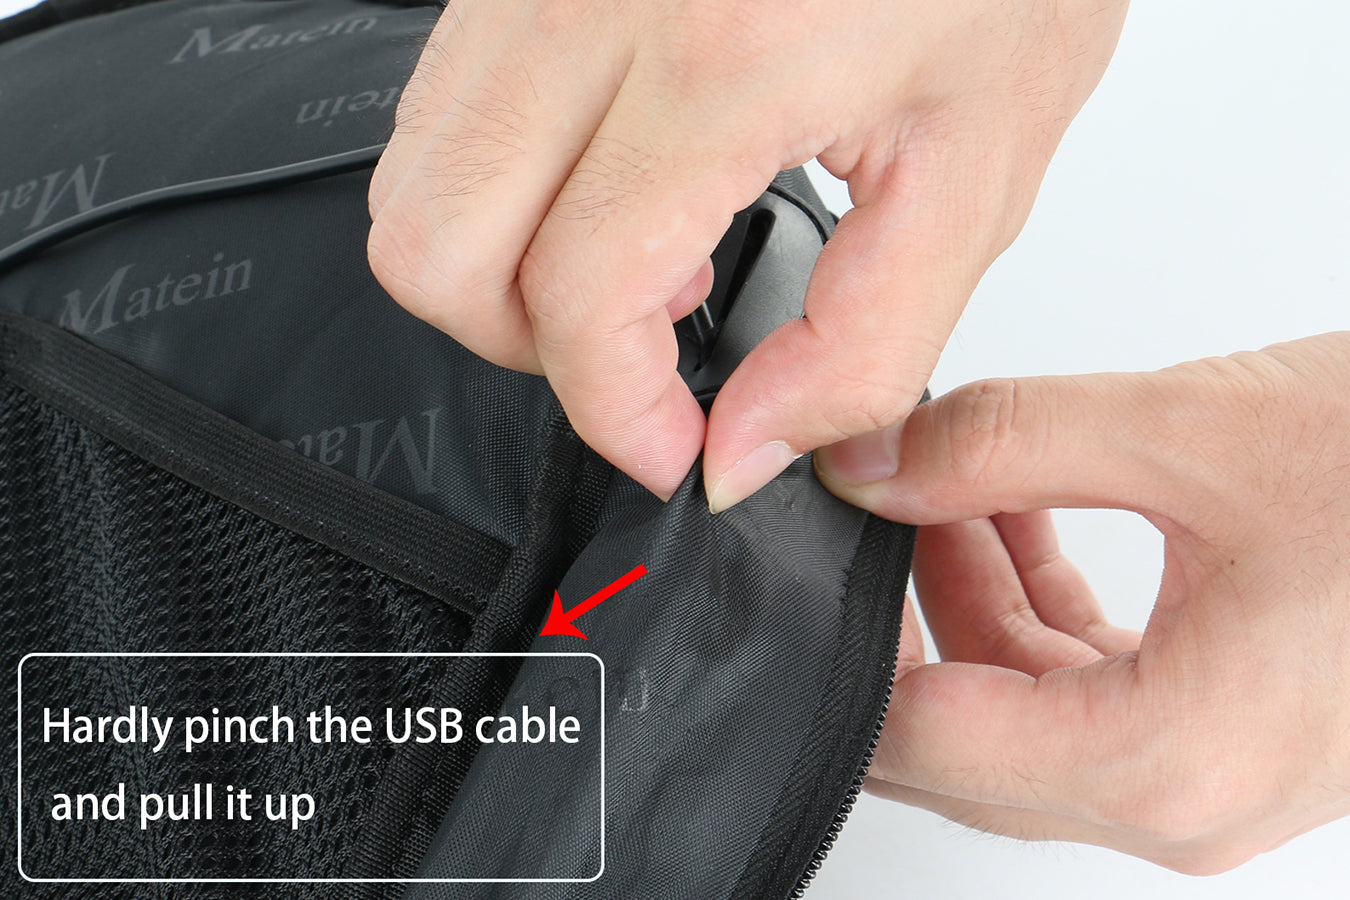 Matein USB port backpack washing instructions